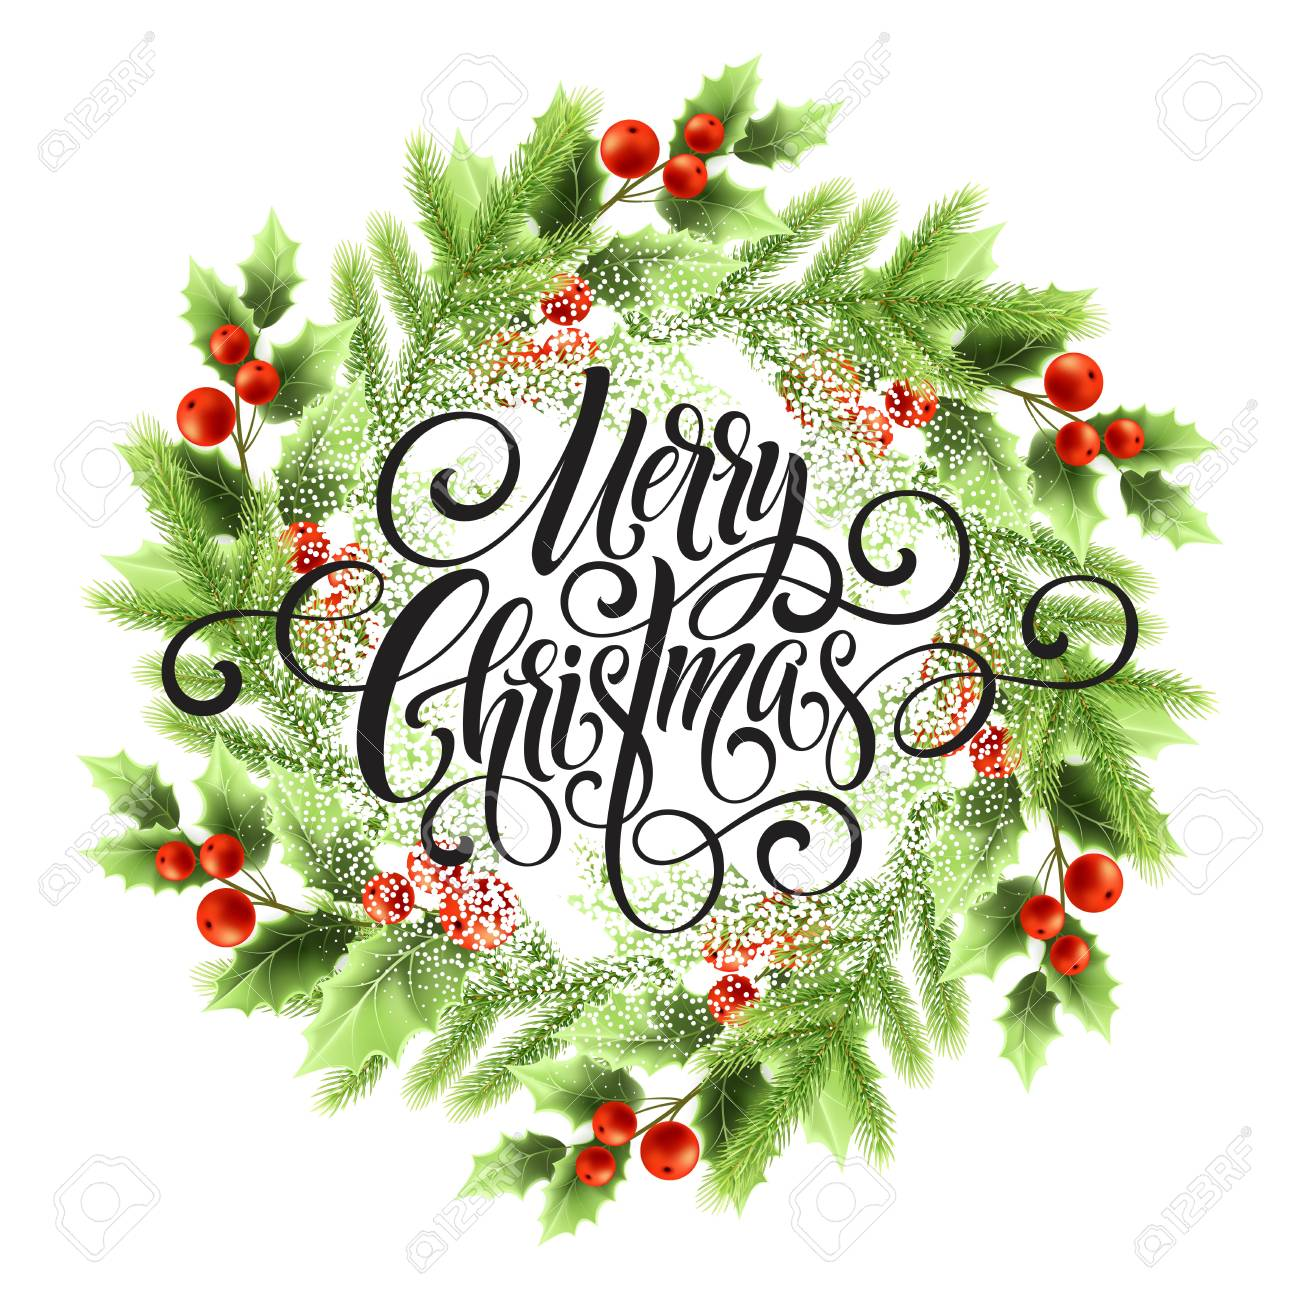 Merry Christmas lettering in mistletoe wreath. Christmas round frame with snow. Xmas mistletoe berries and fir branches wreath. Postcard and poster winter design. Isolated vector illustration - 108593763